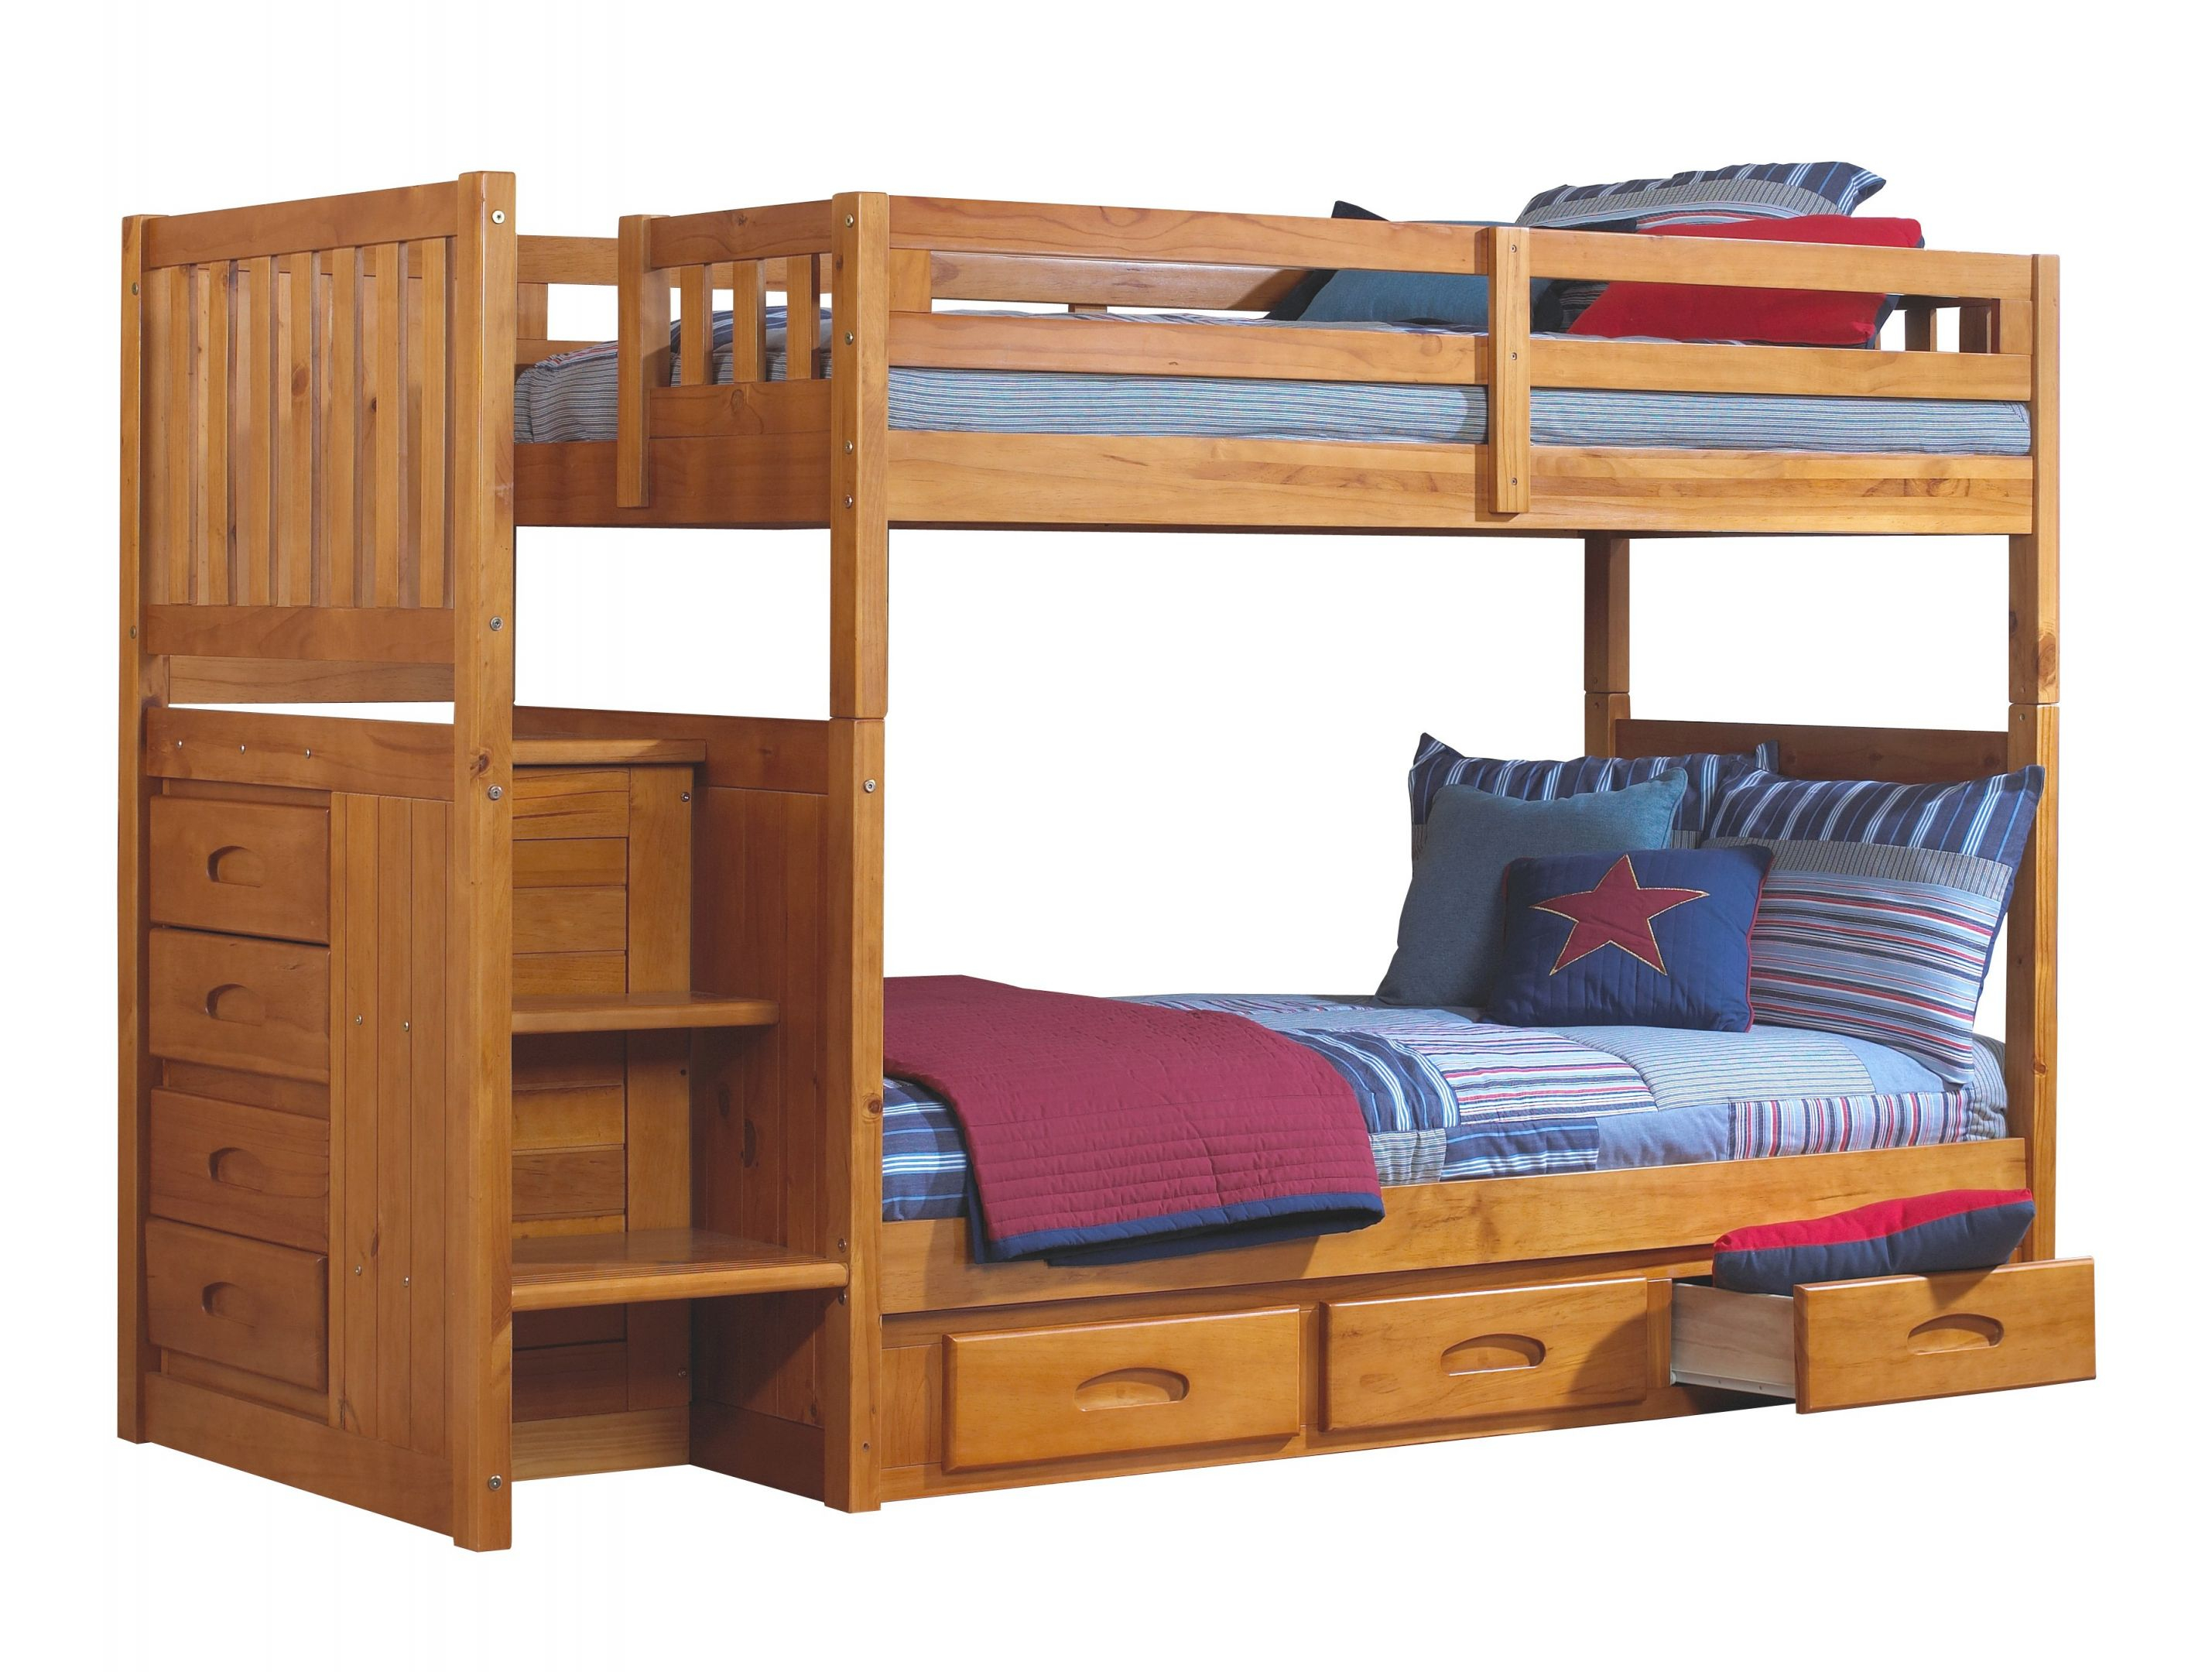 Discovery World Furniture Twin Over Twin Honey Mission Staircase Bunk Beds With Desk, Hutch, Chair, And Bookcase regarding Luxury Twin Bedroom Furniture Set